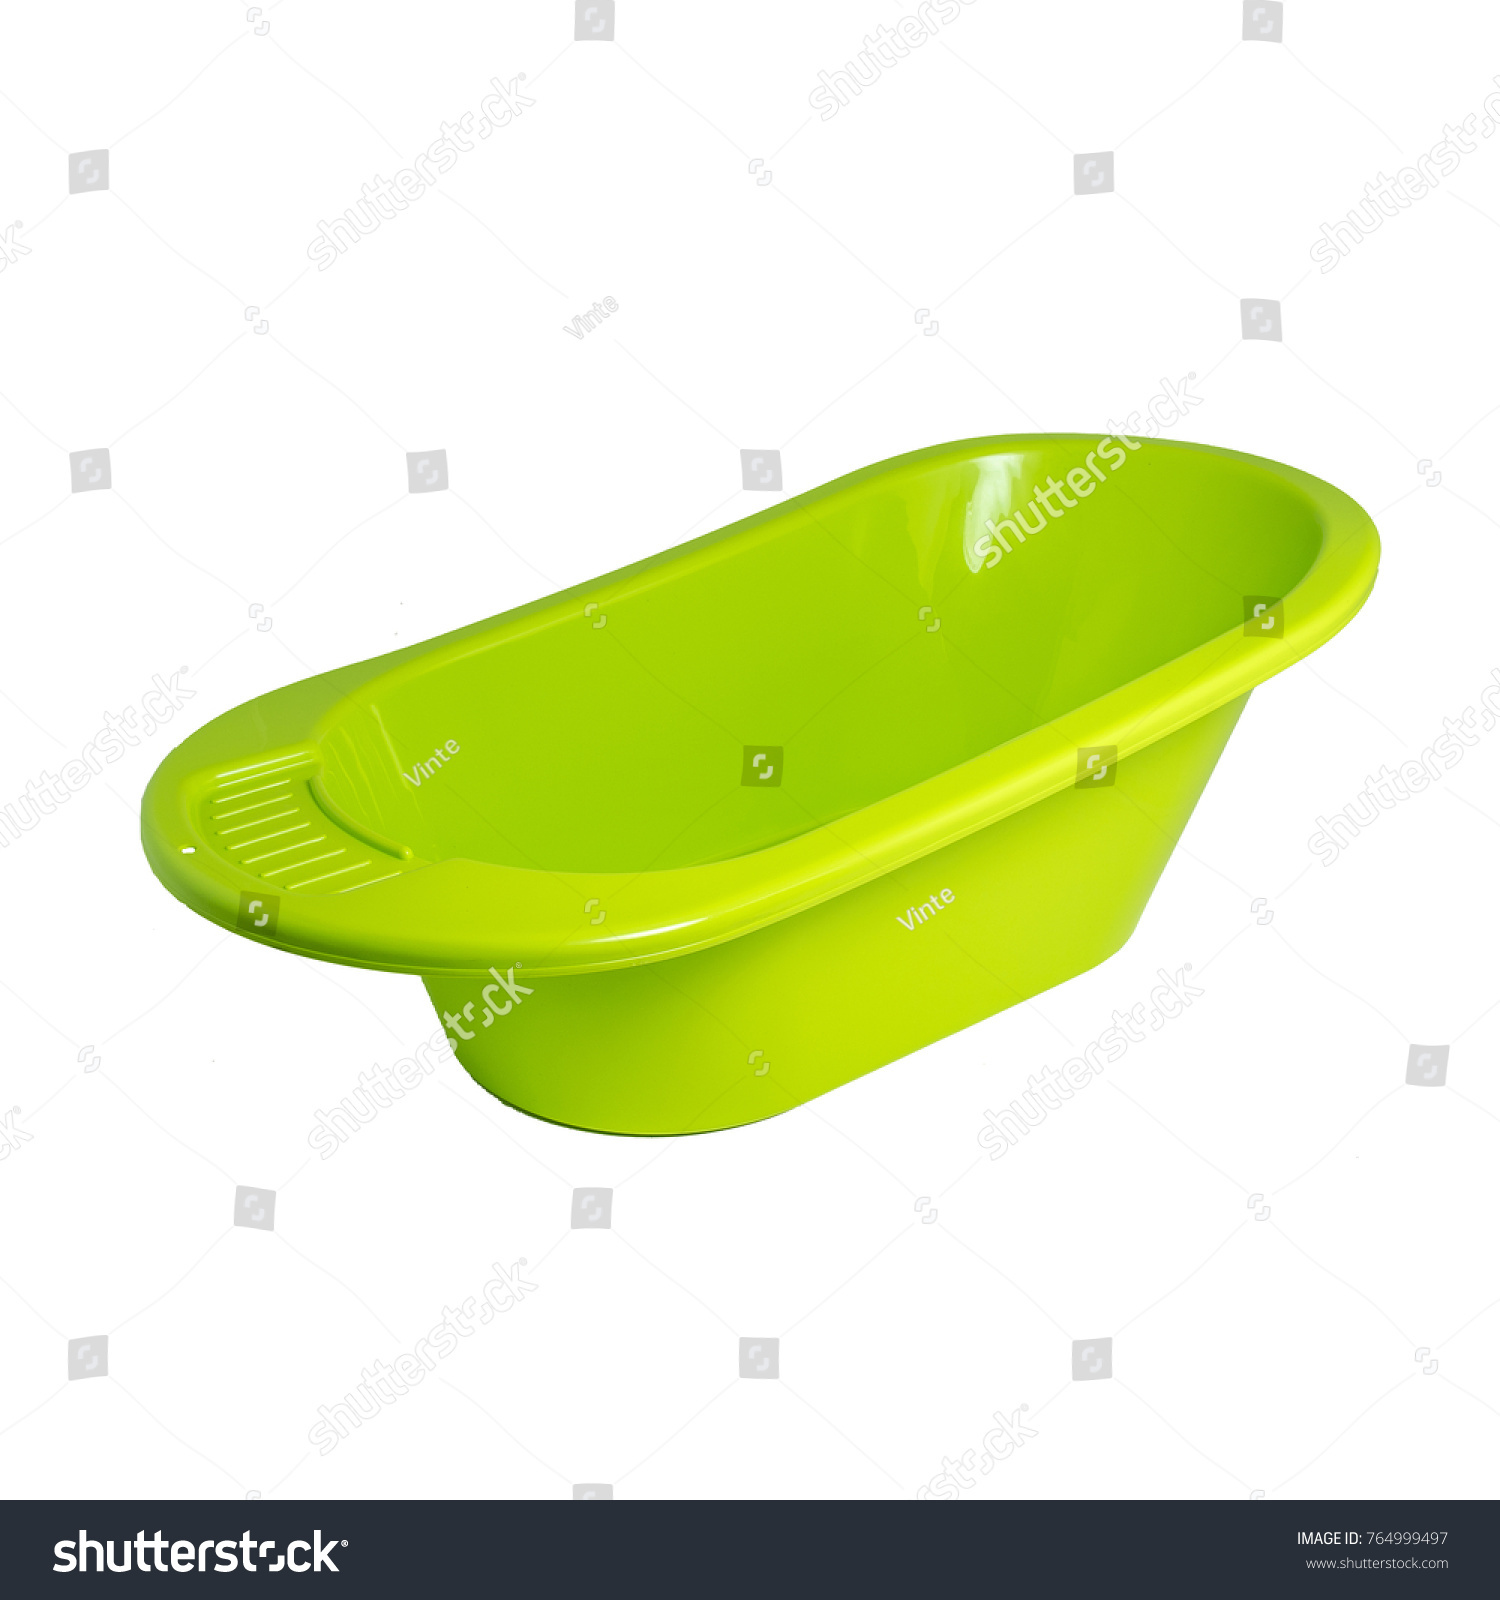 Plastic Baby Bathtub Stock Photo 764999497 - Shutterstock